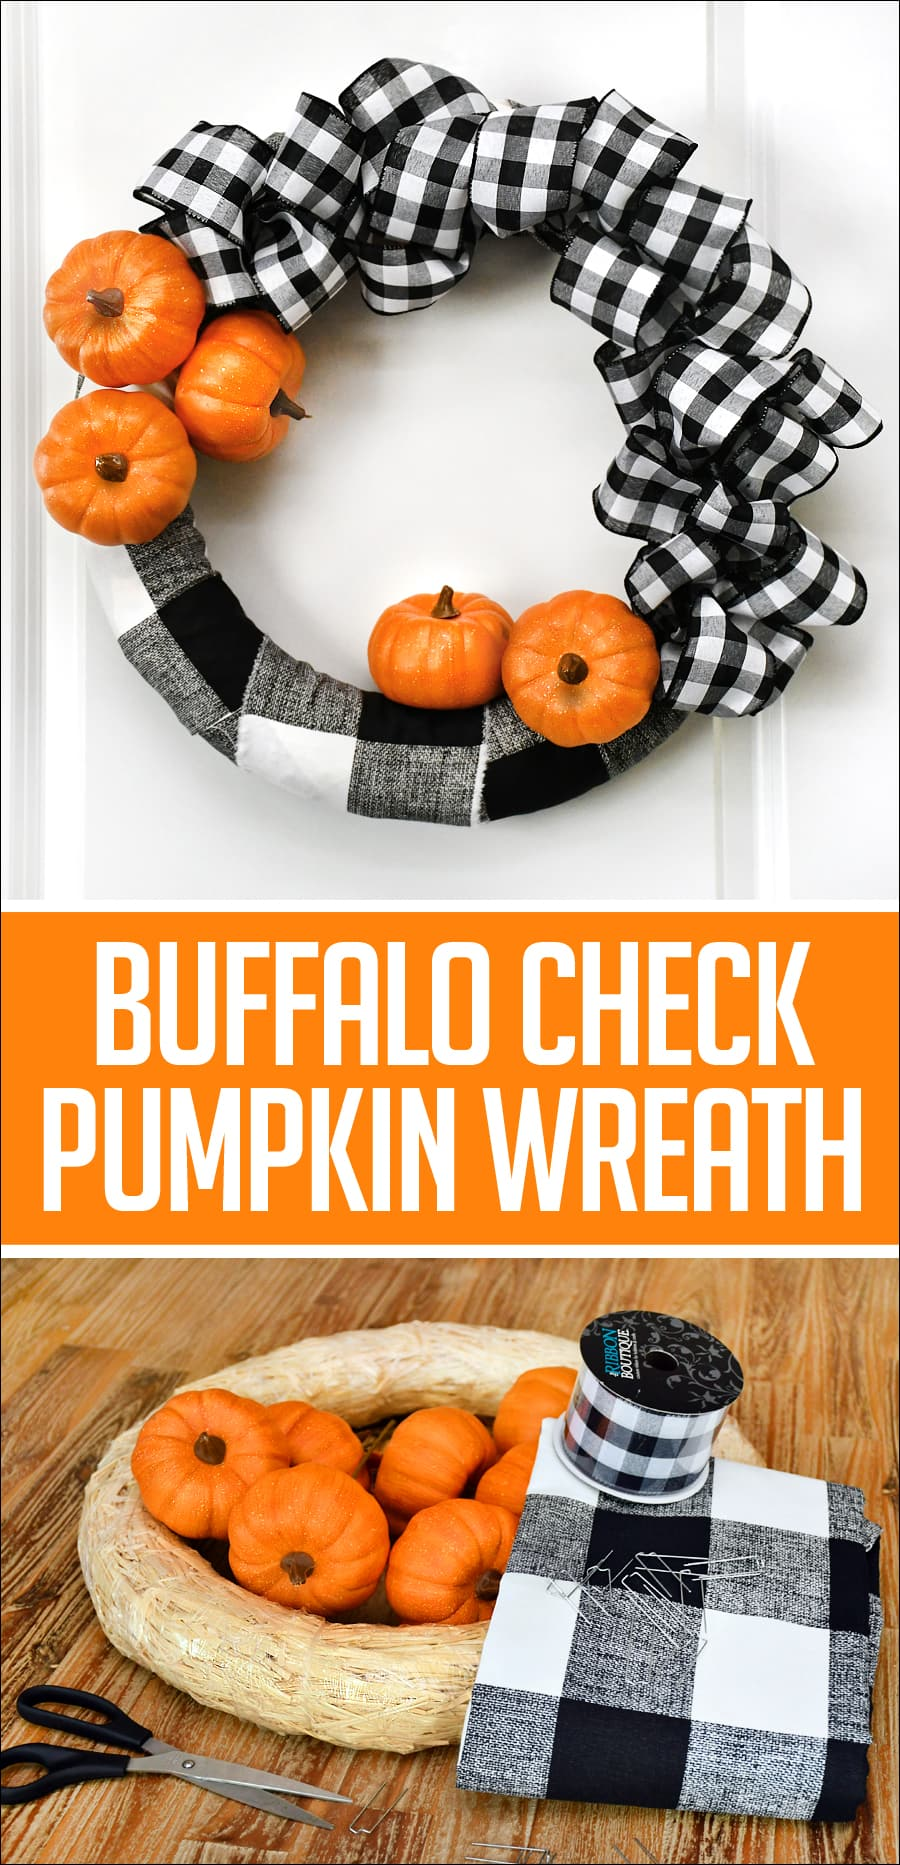 Buffalo check pumpkin wreath poster.